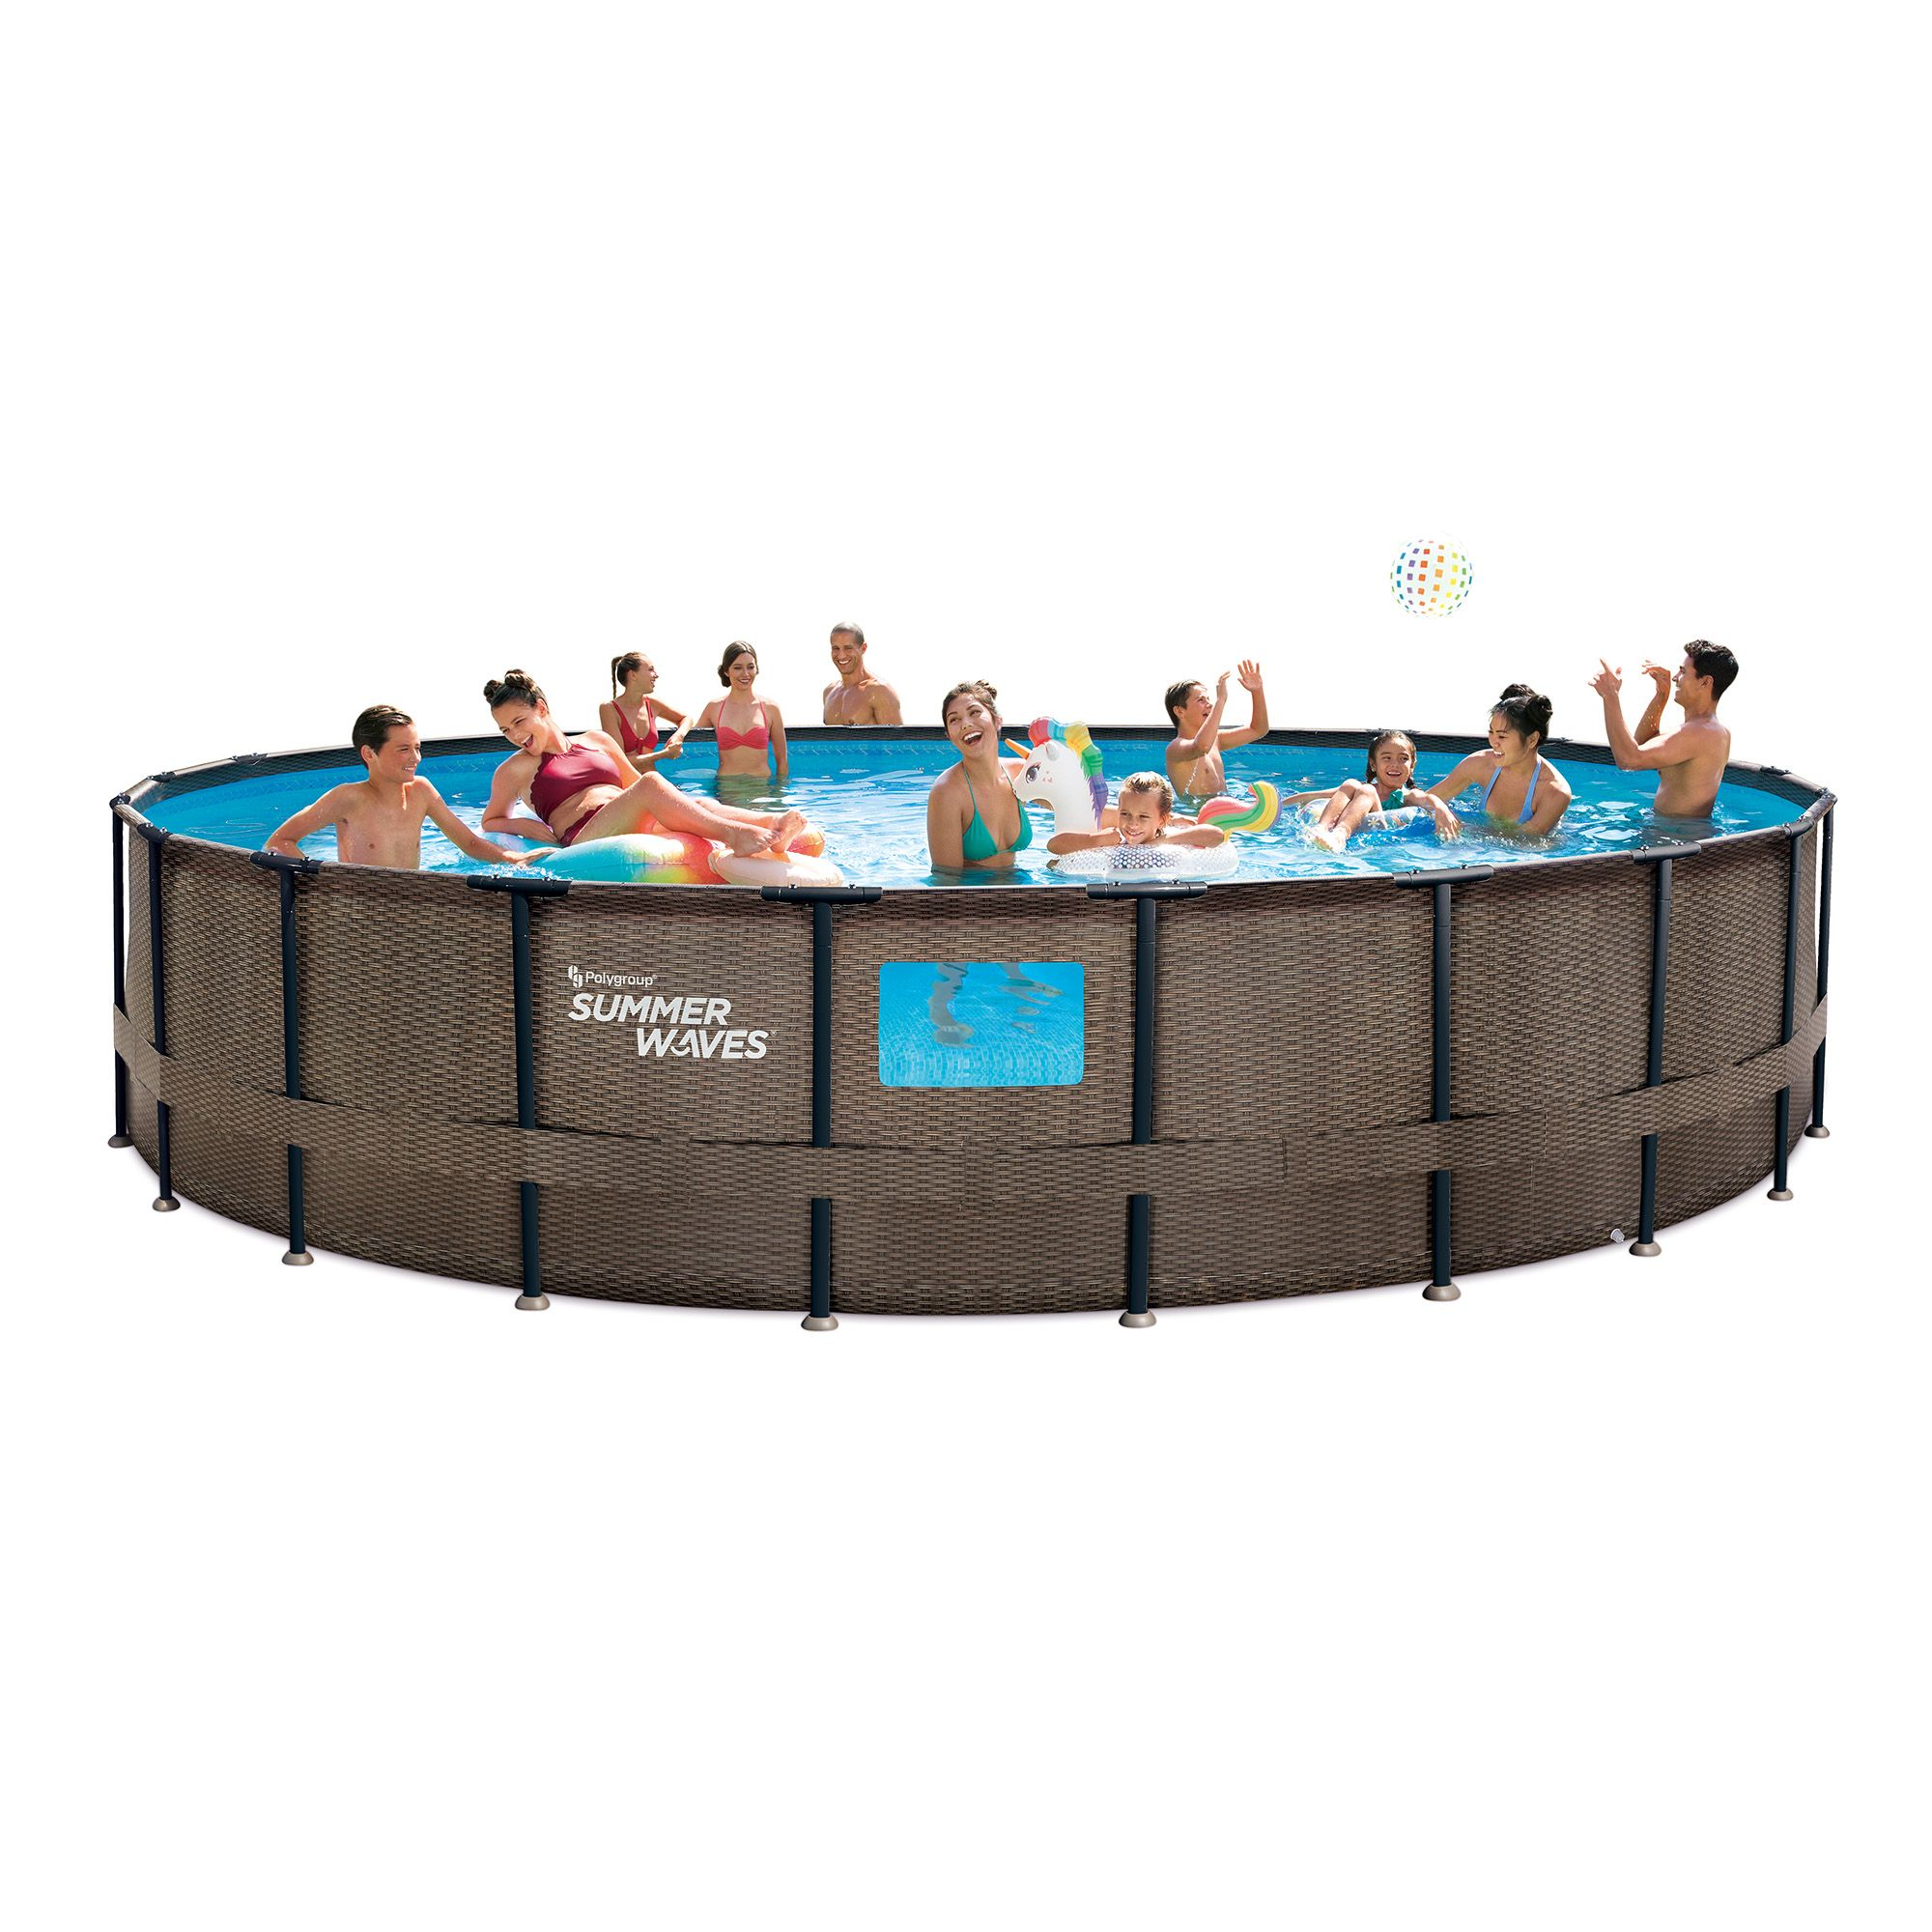 Summer Waves 22ft Dark Double Rattan Elite Frame Pool With 4 See Through Windows Walmart Com In 2020 Summer Waves Pool In Ground Pools